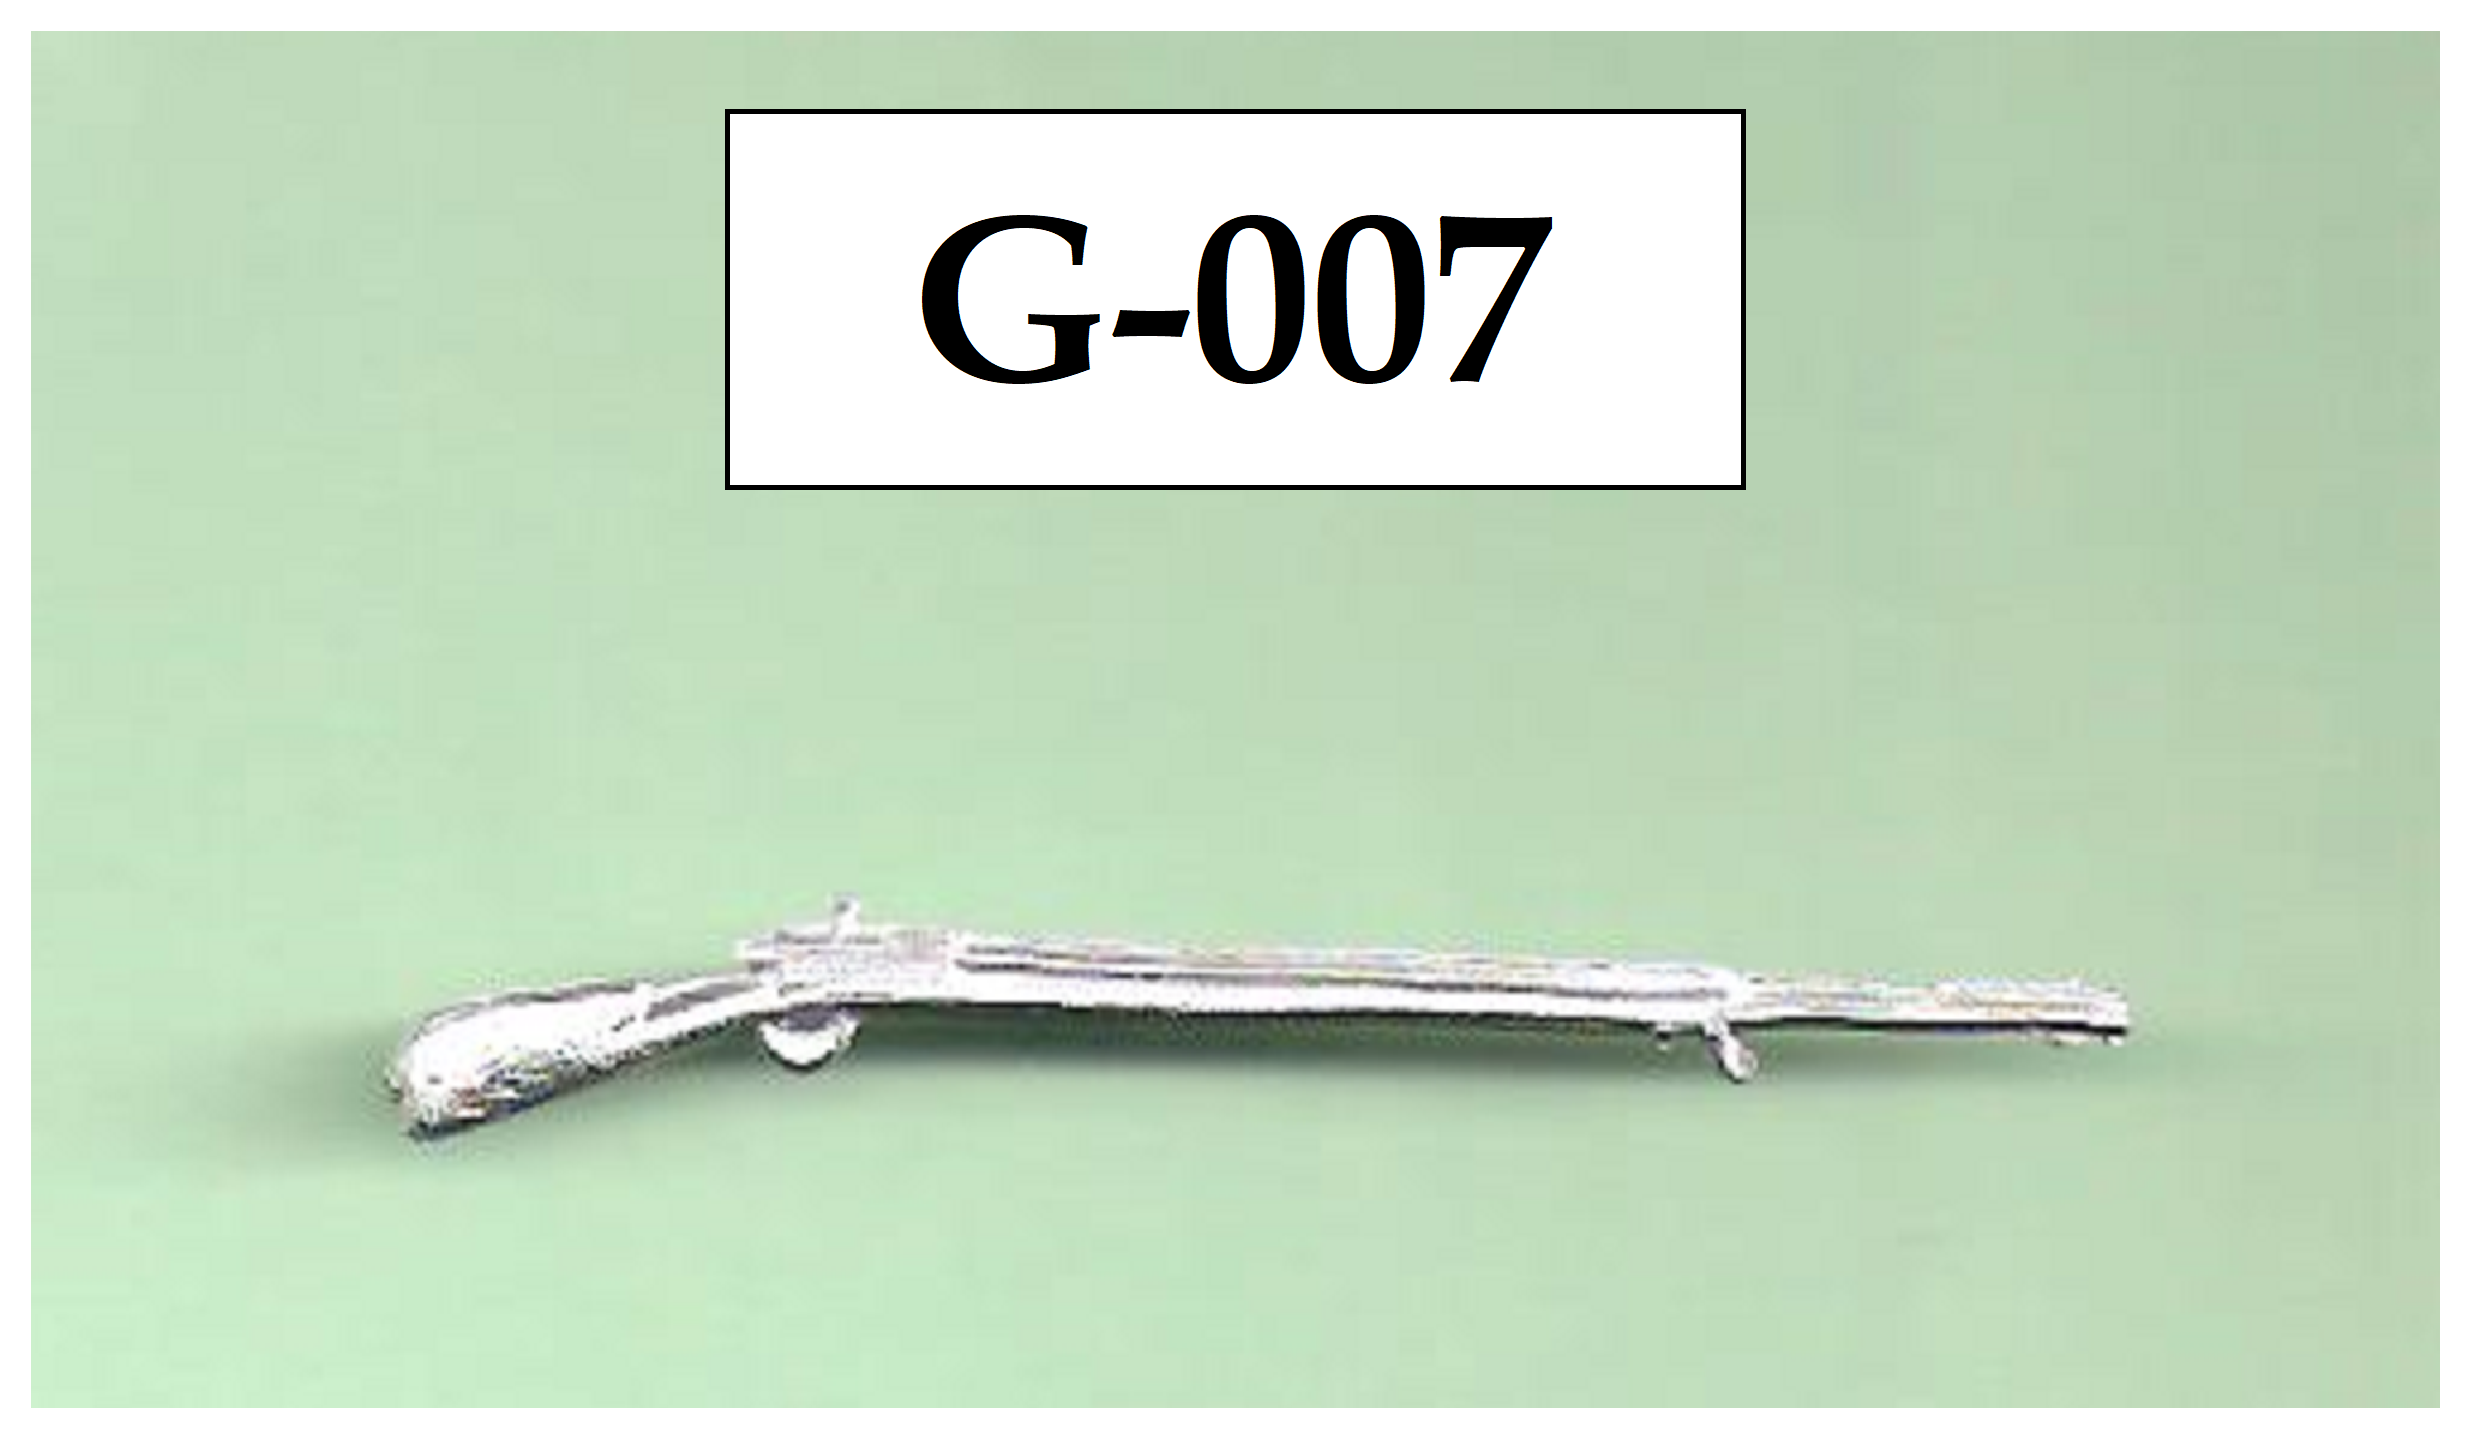 Mignot rifle with bayonet - Colonial period lebel